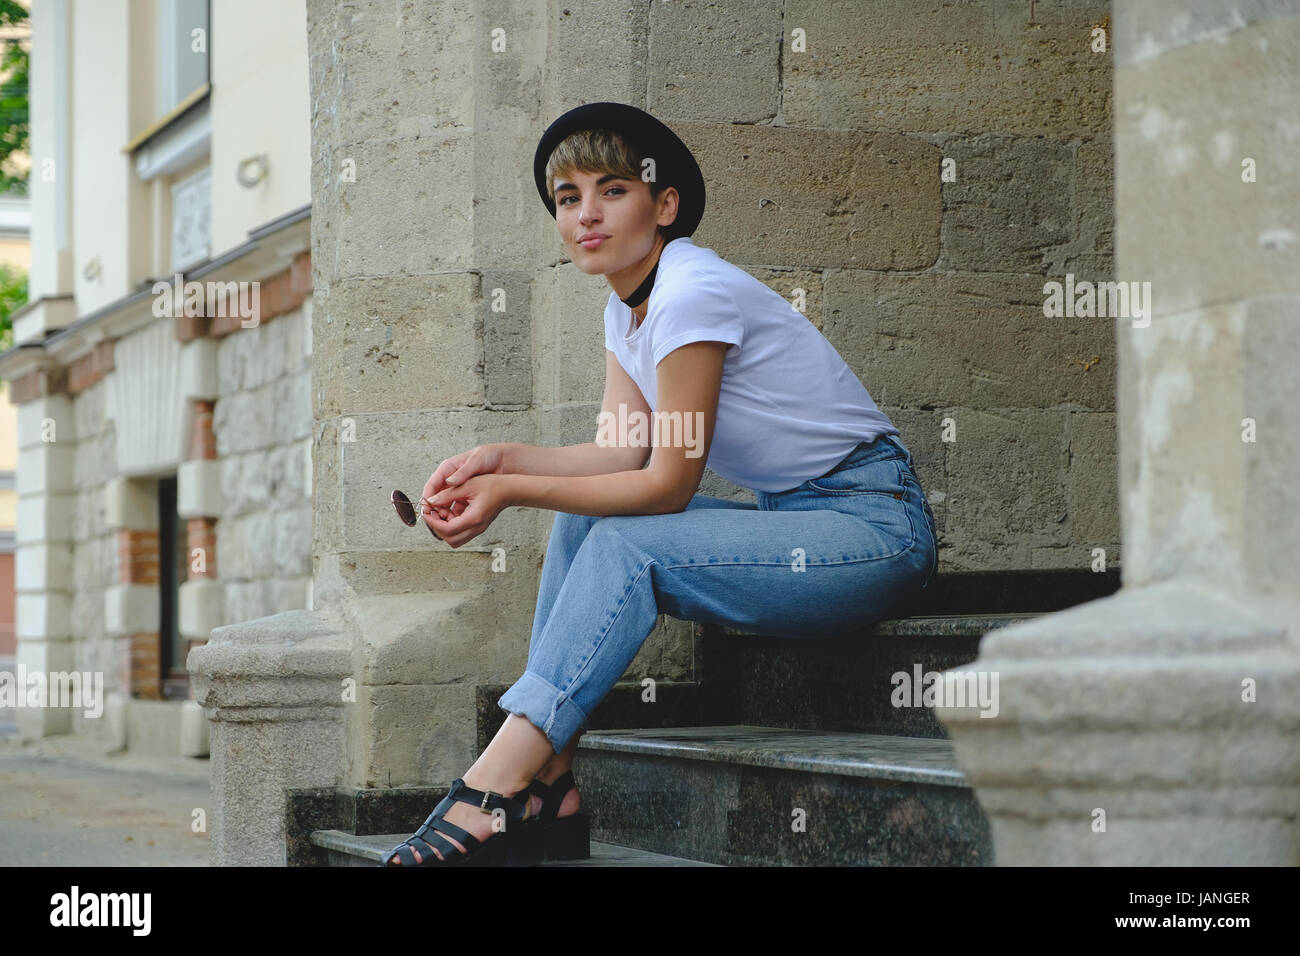 Close up portrait of female hipster with natural makeup and short haircut enjoying leisure time outdoors Stock Photo